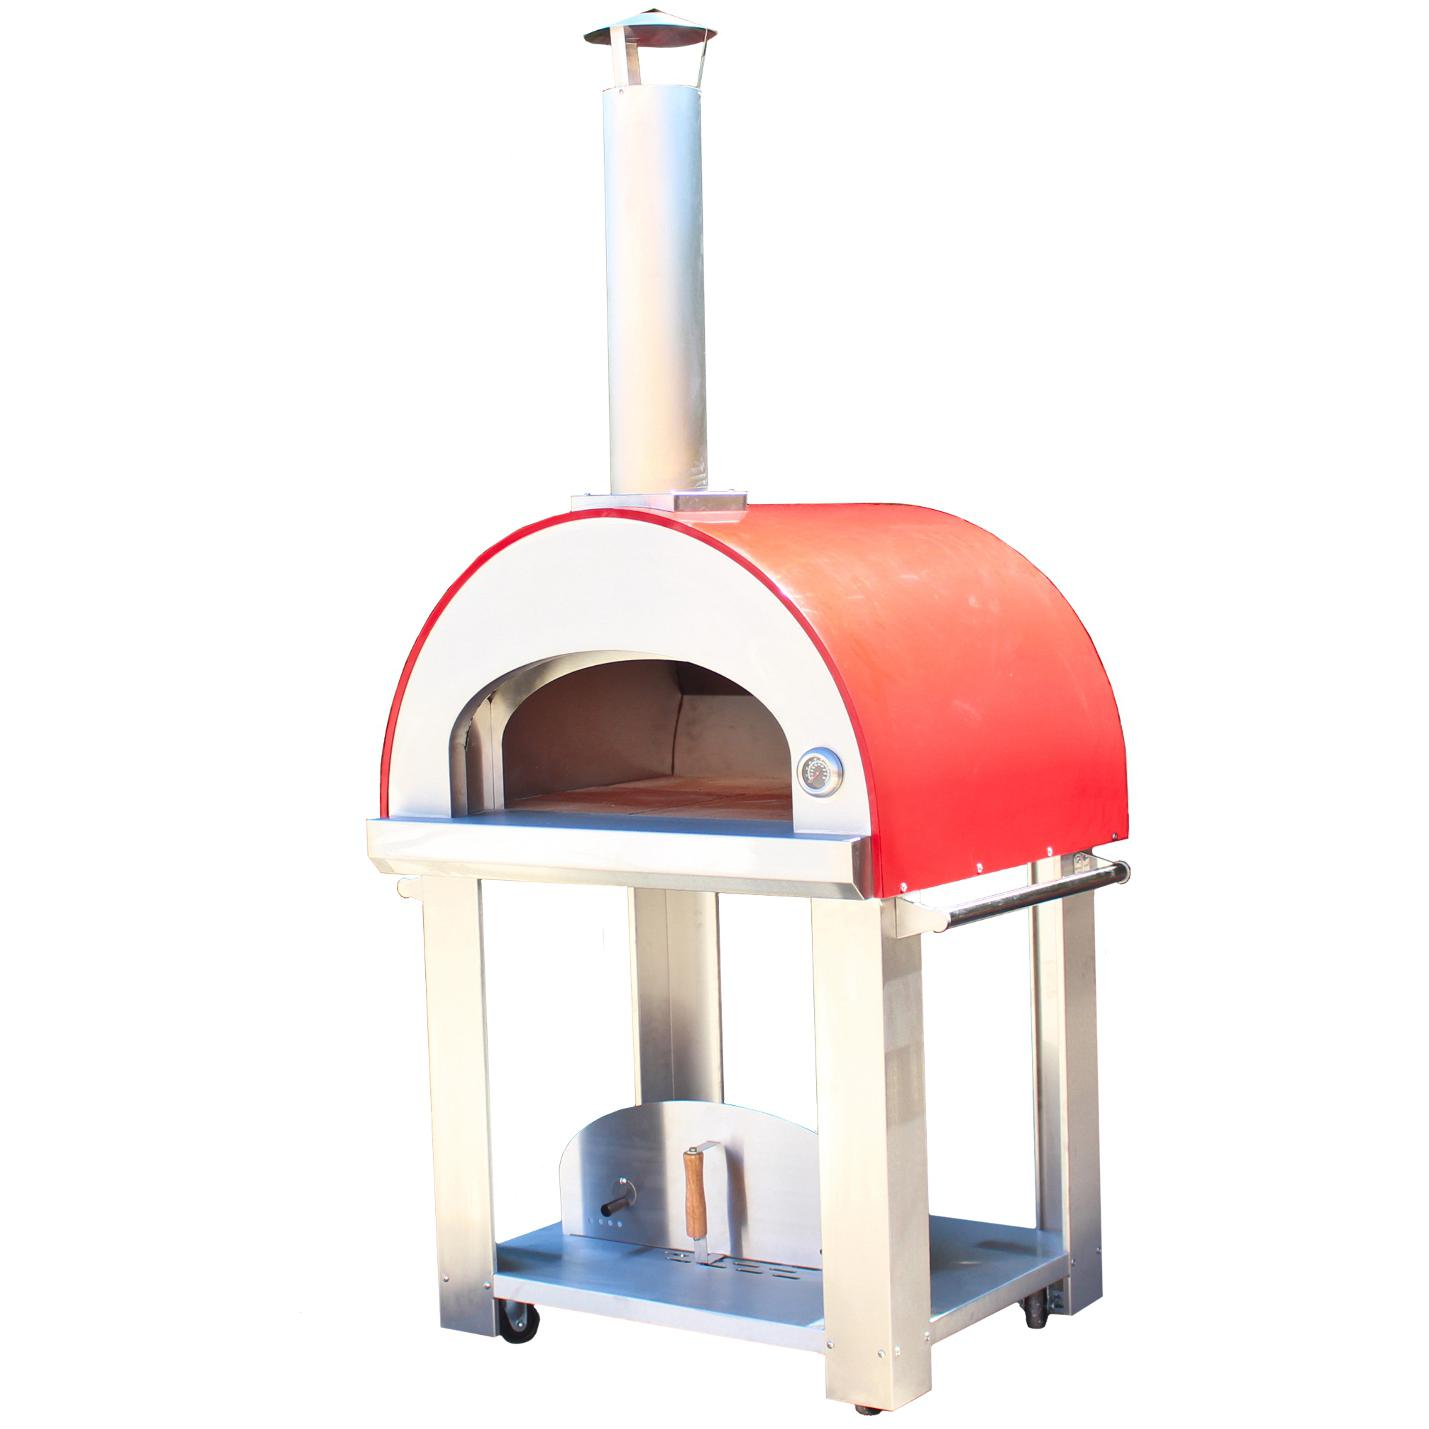 Bella Grande C32 (32 Inch) Wood Fired Outdoor Pizza Oven On Cart